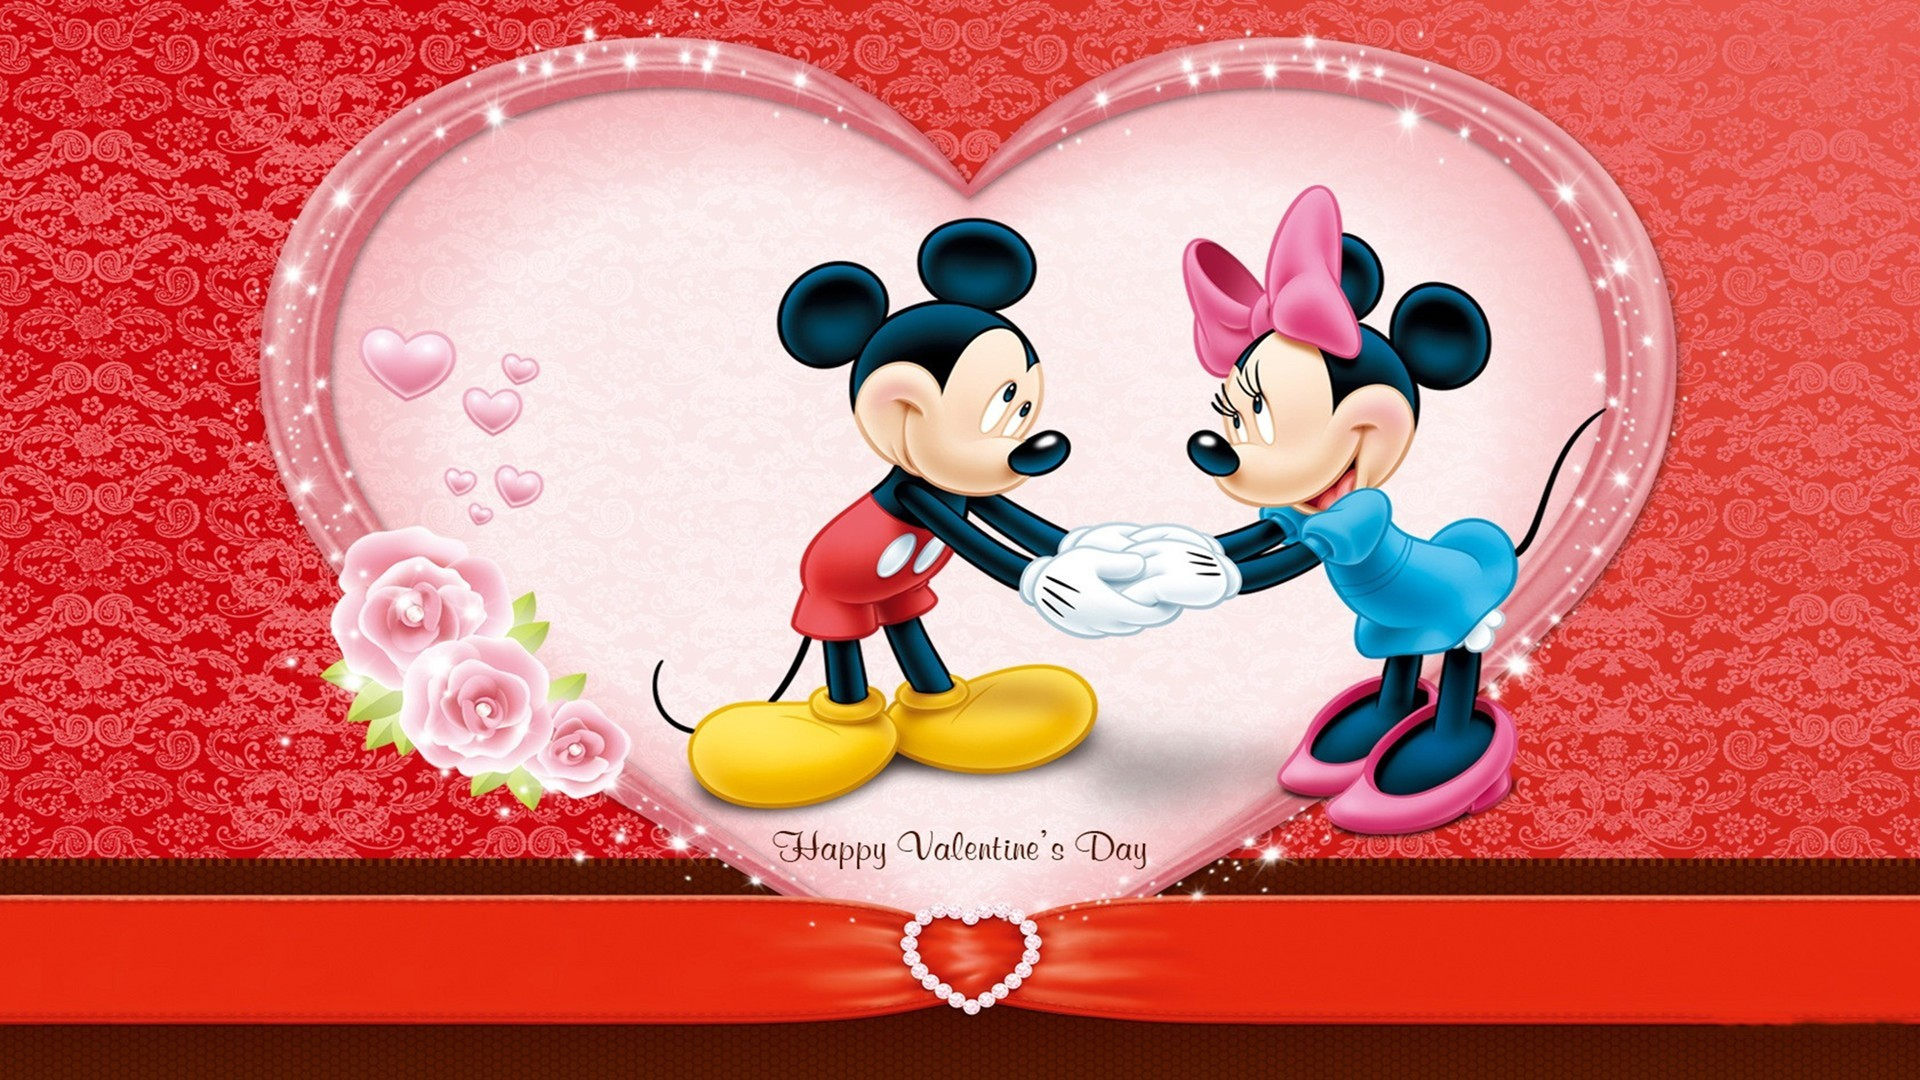 1920x1080 cute mickey wishes happy valentines day wallpaper Wallpaper with .